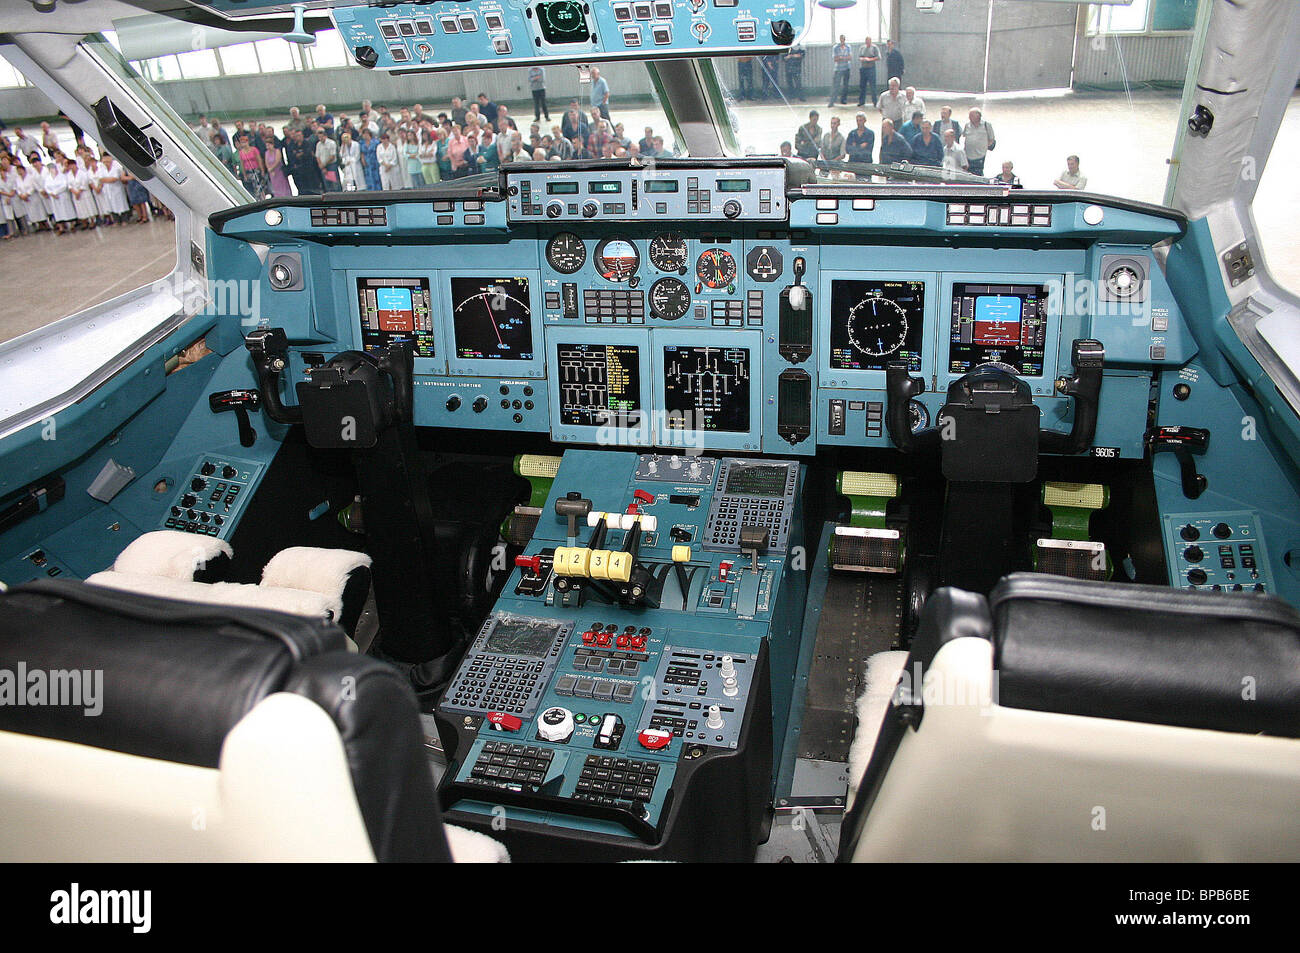 Cubana Airlines High Resolution Stock Photography And Images Alamy